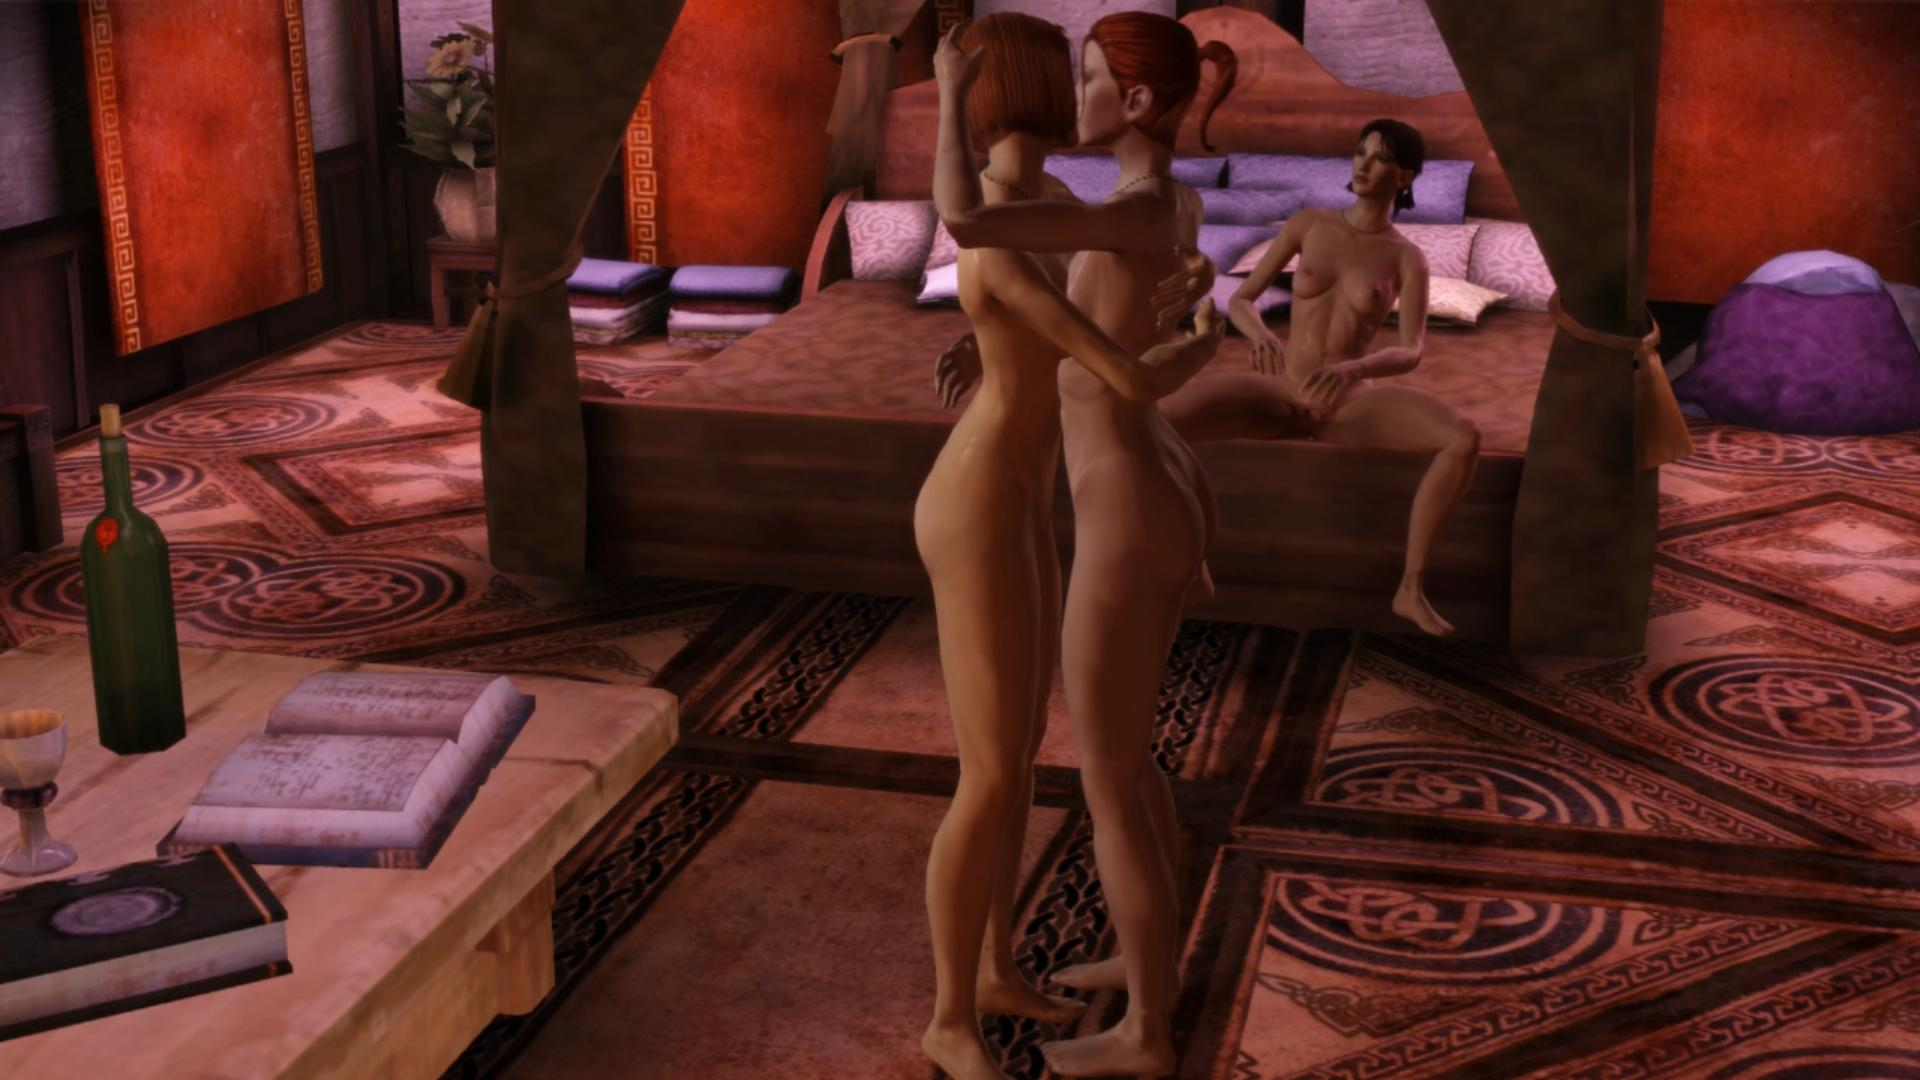 Da 2 nude mods nude galleries